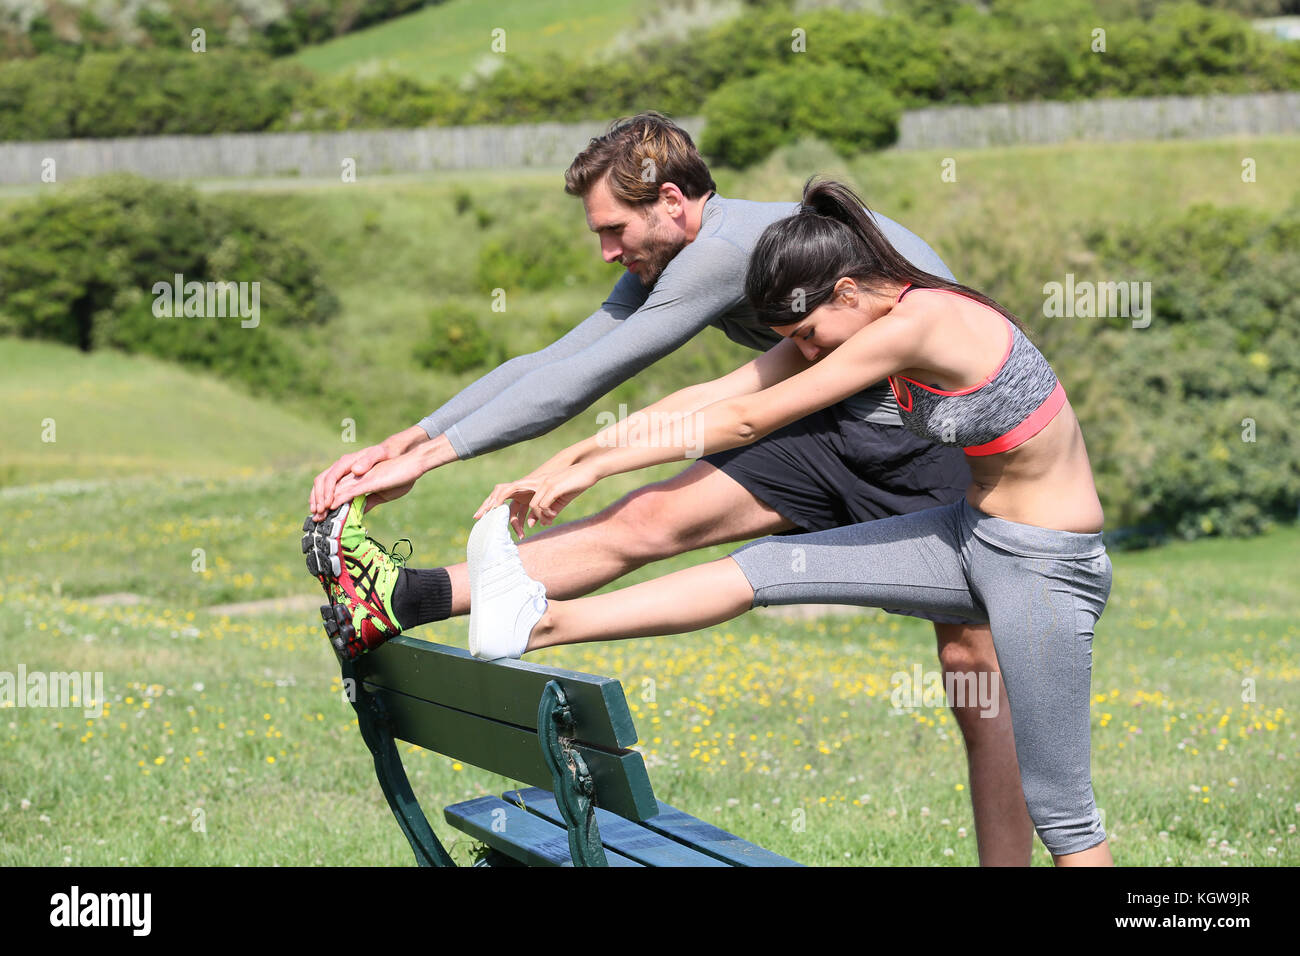 Couple of runners stretching out after running session - Stock Image